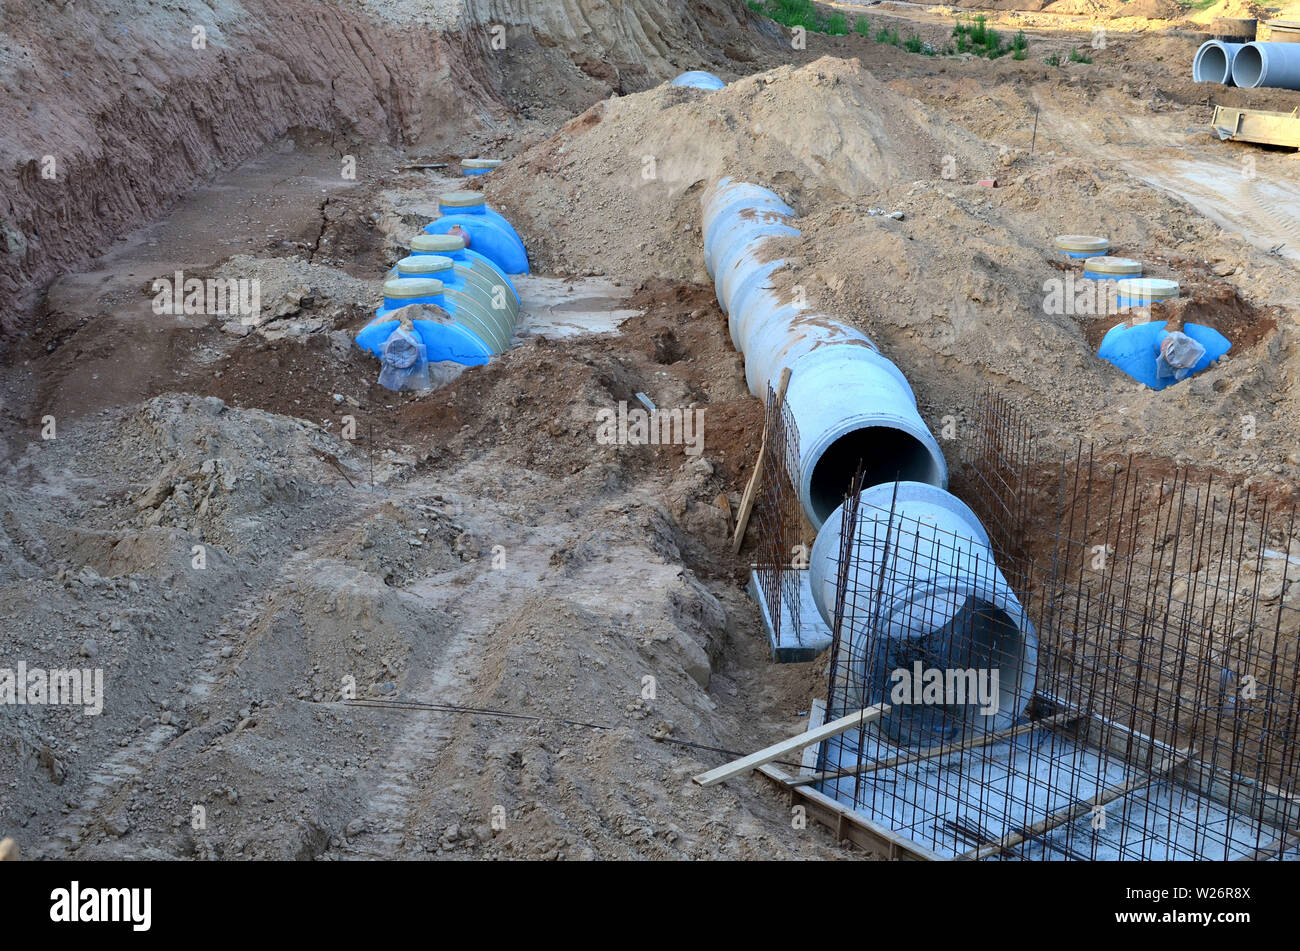 Laying or replacement of underground storm sewer pipes  Installation